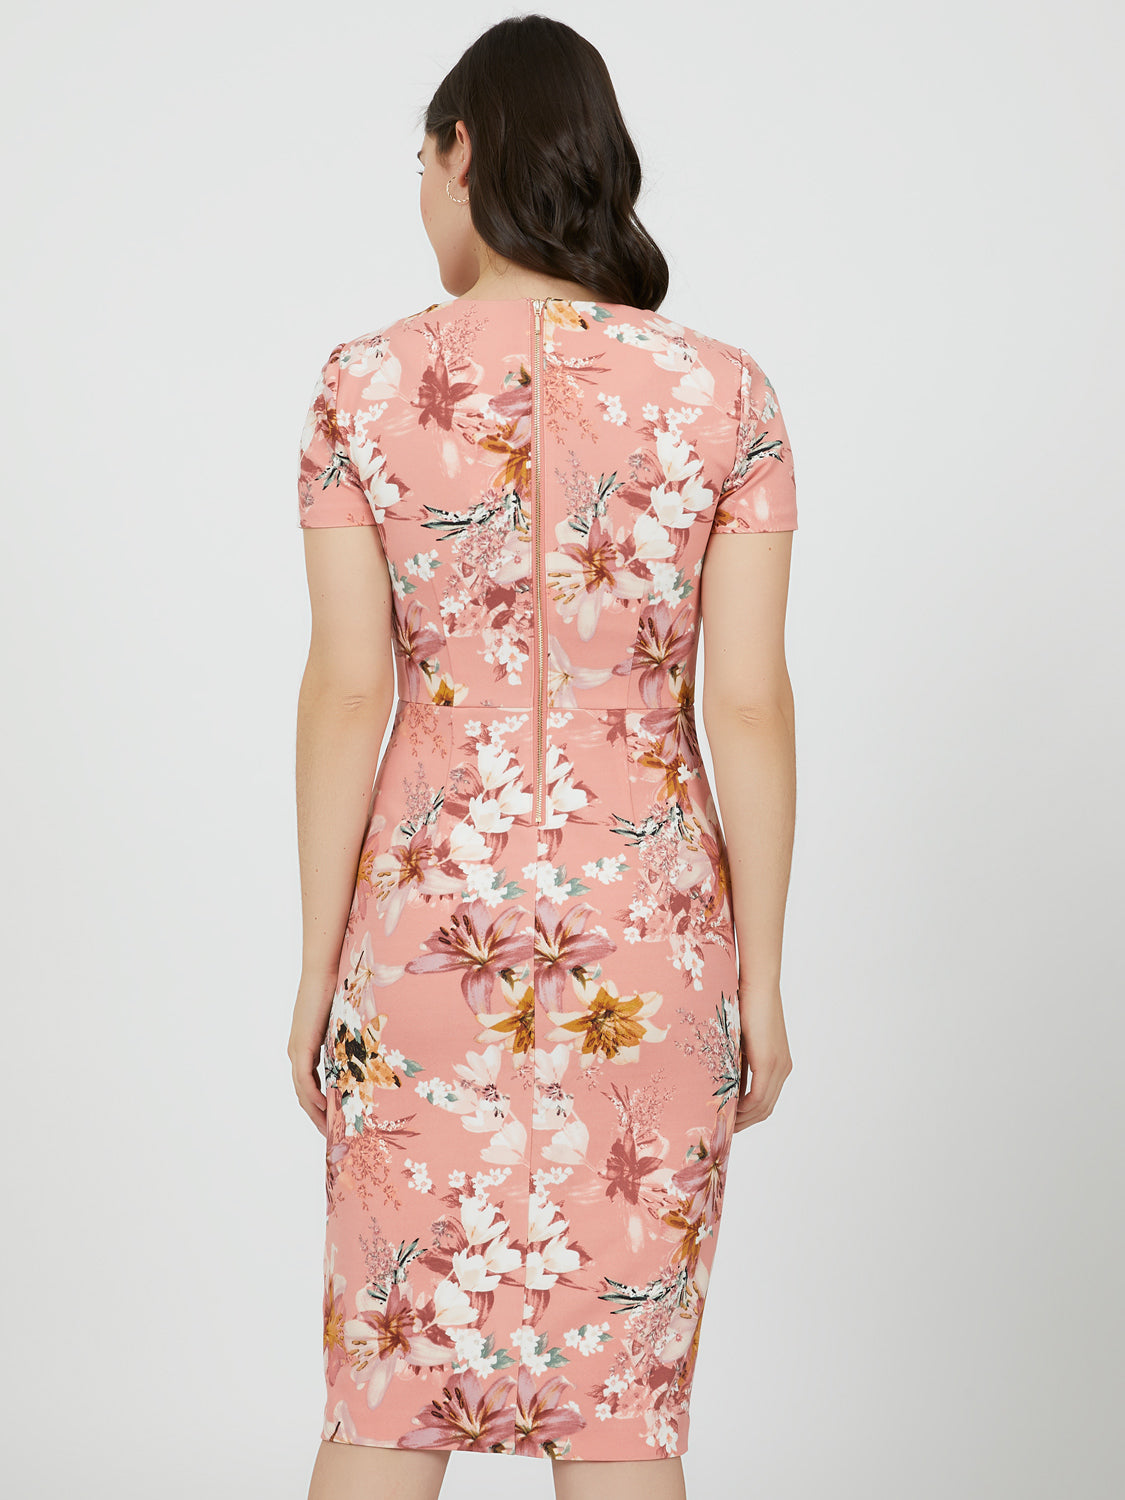 Floral Empire Waist Sheath Dress